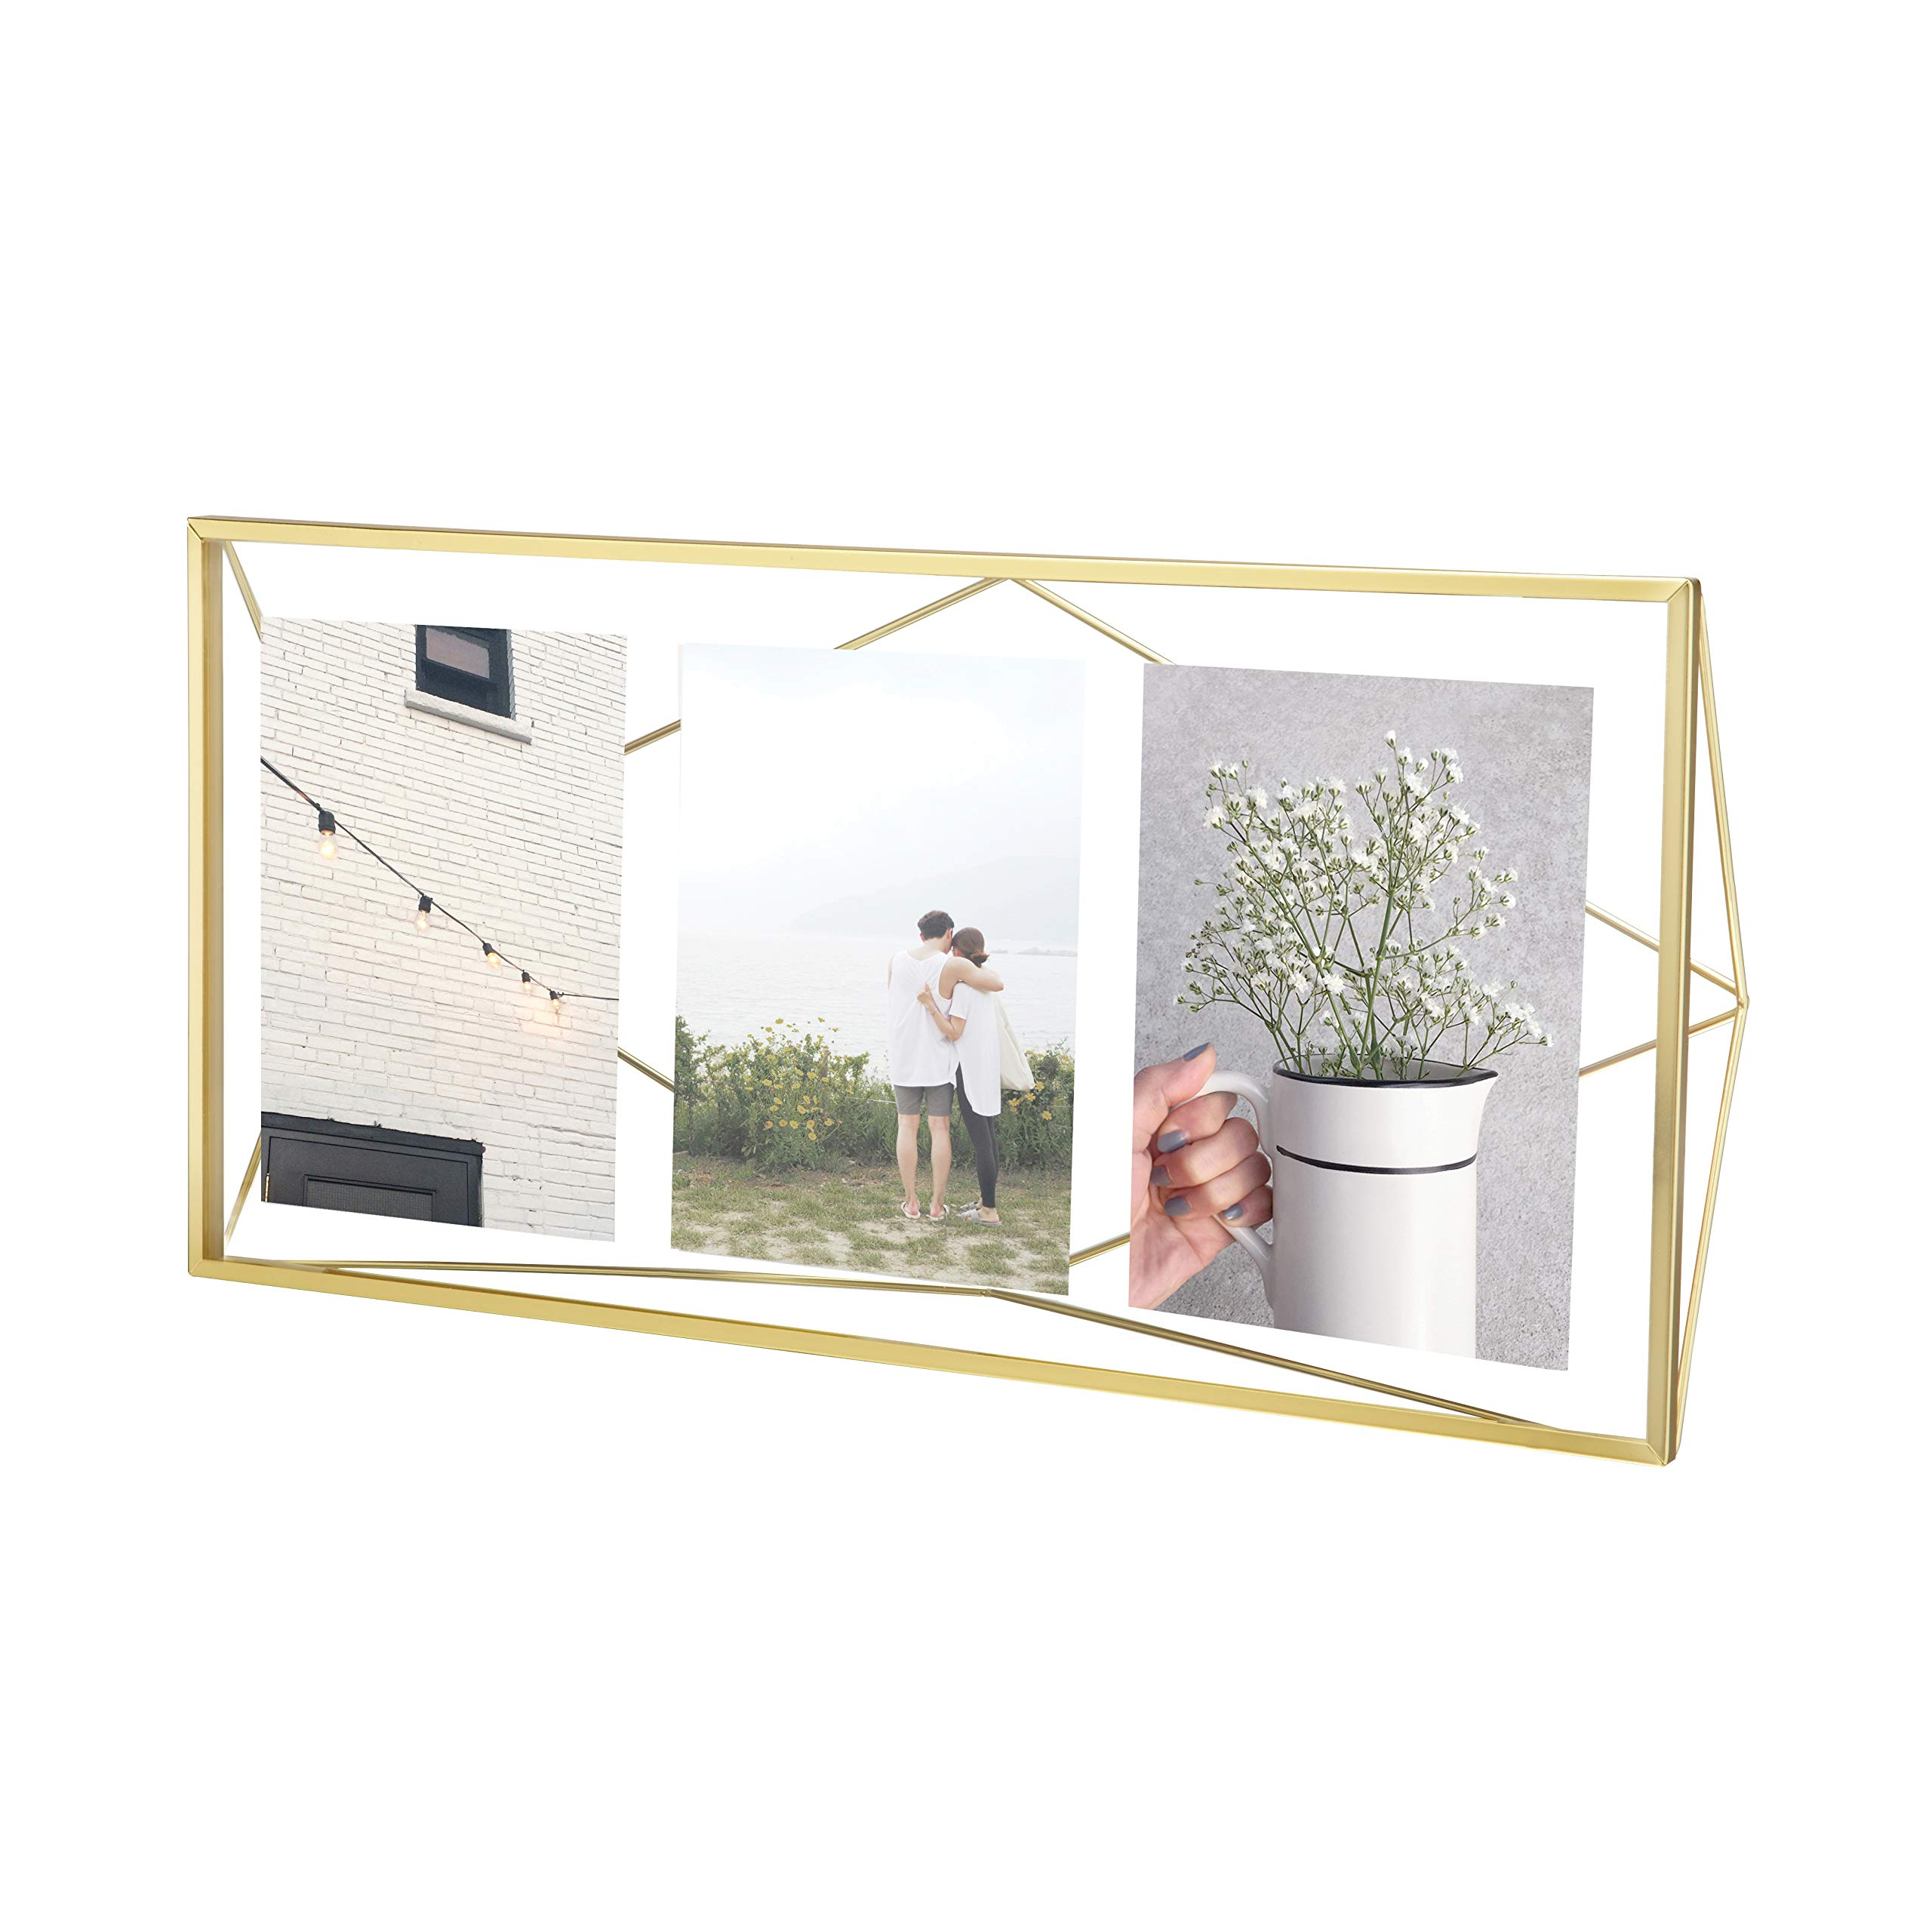 Umbra Prisma Multi Picture Frame - Photo Display for Desk or Wall, Brass by Umbra